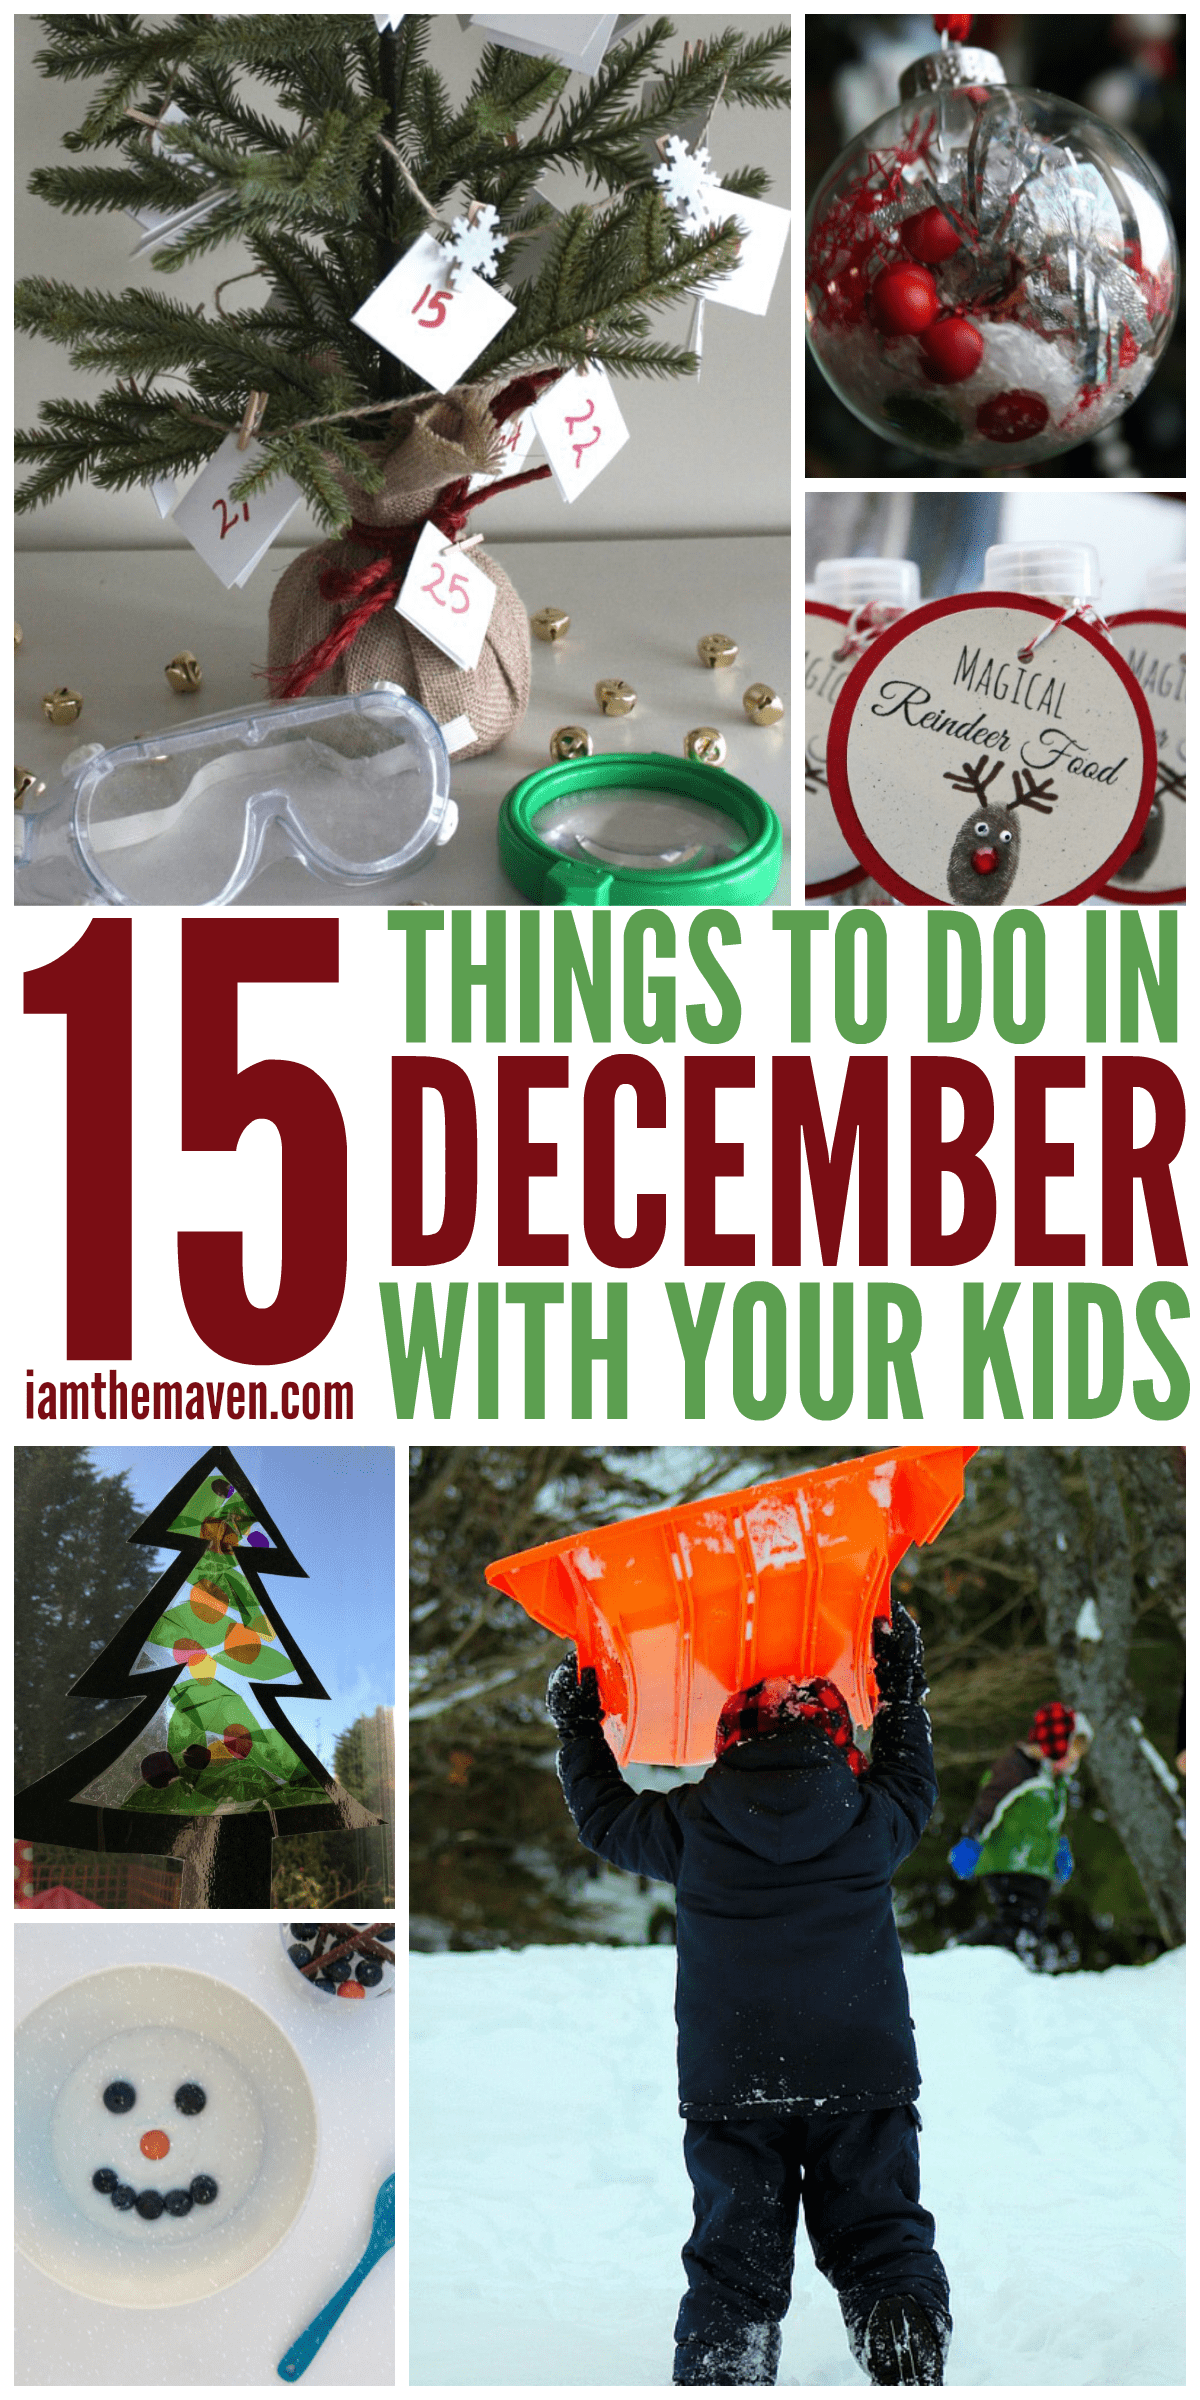 15 Things to Do in December with Kids